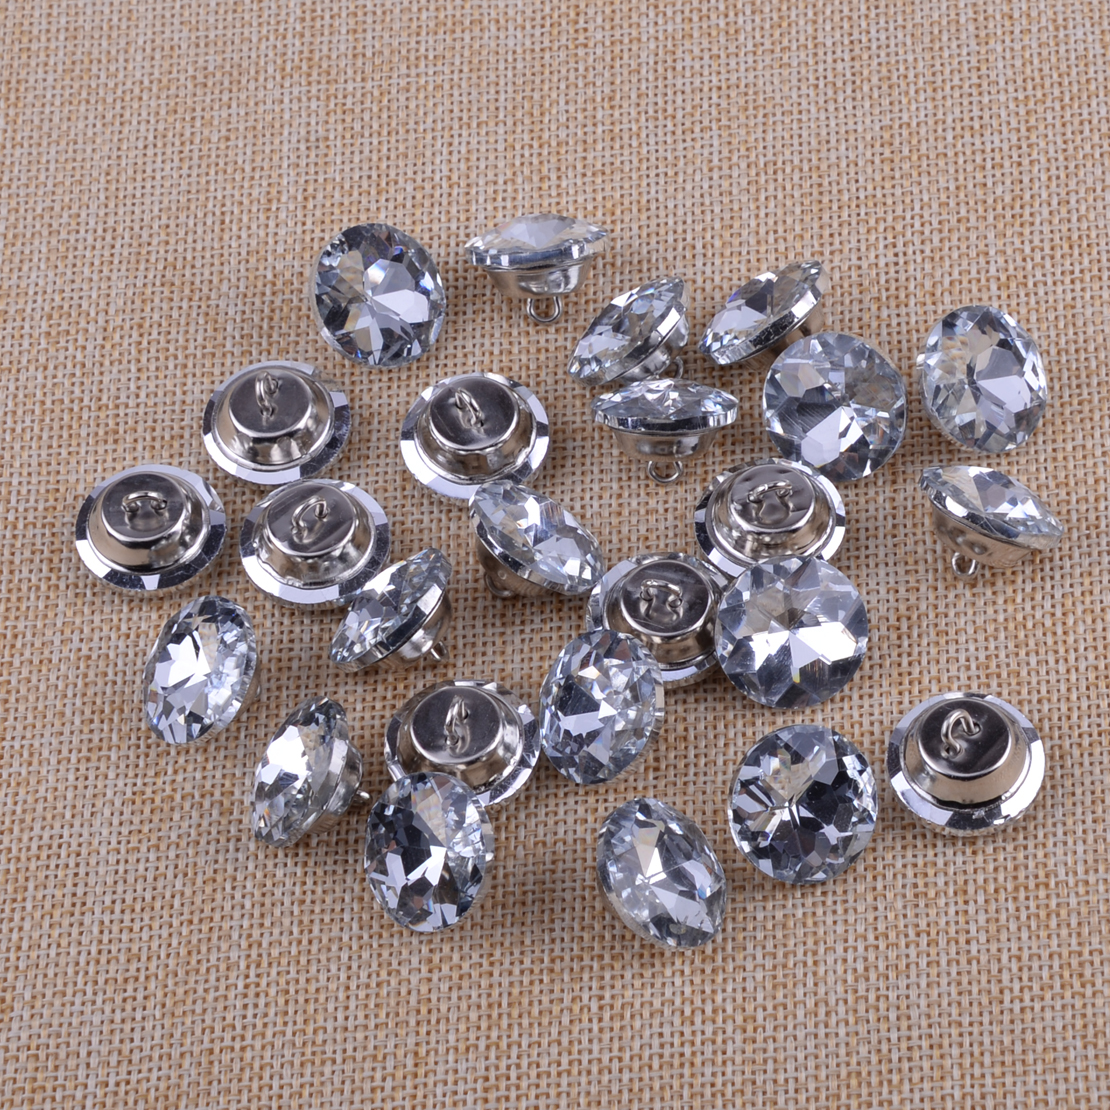 25pcs 20mm Crystal Buttons Sofa Sewing Buttons Upholstery Decoration